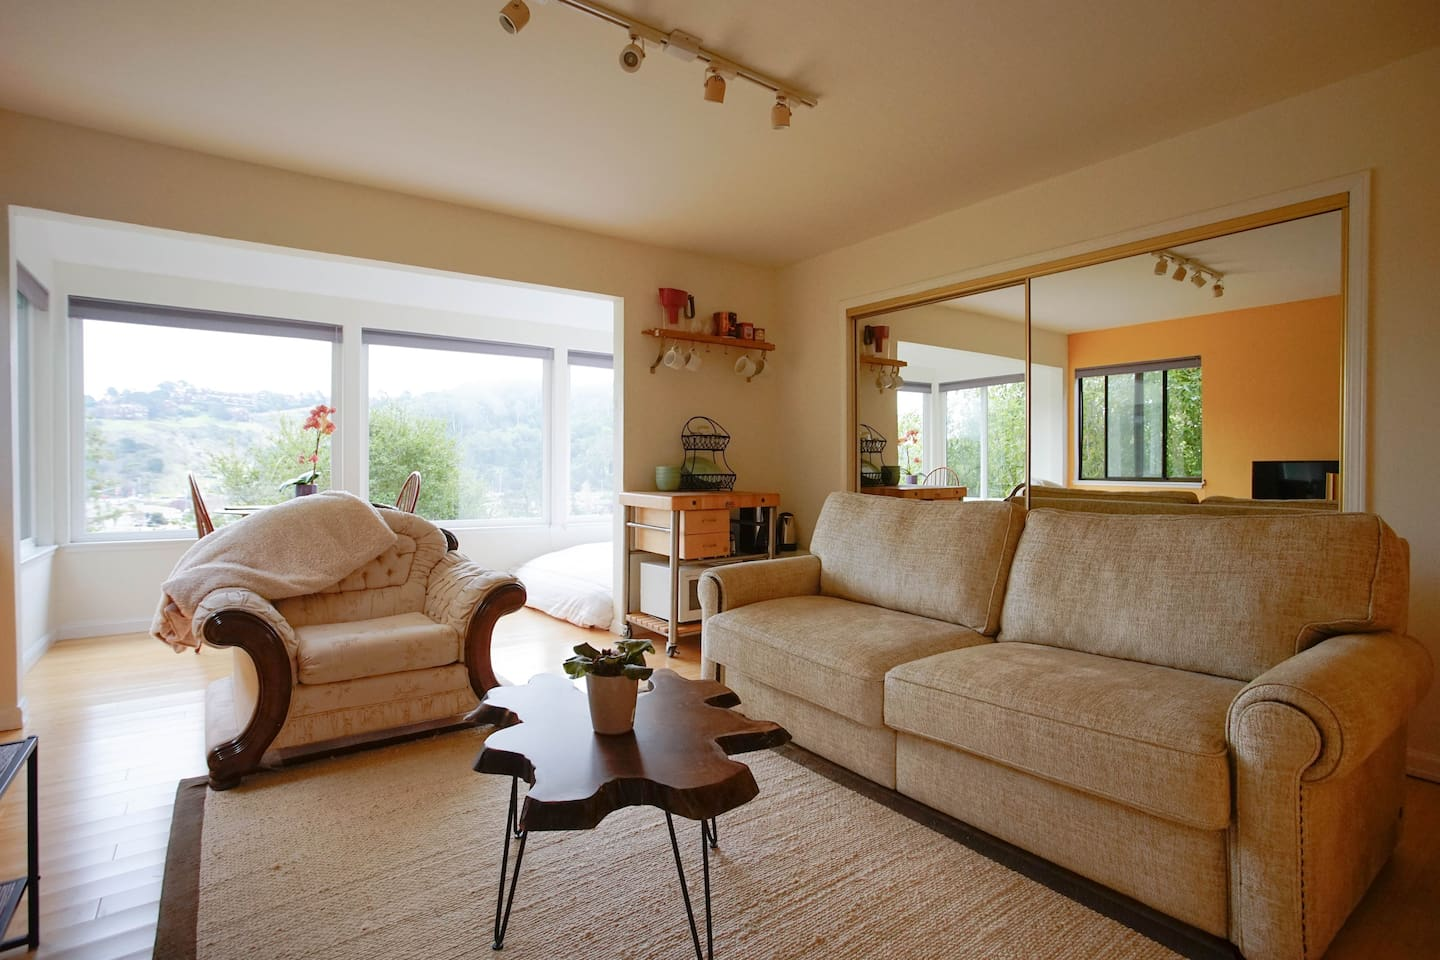 This is the living room. You'll see behind the chair a small dining area and the reading nook om